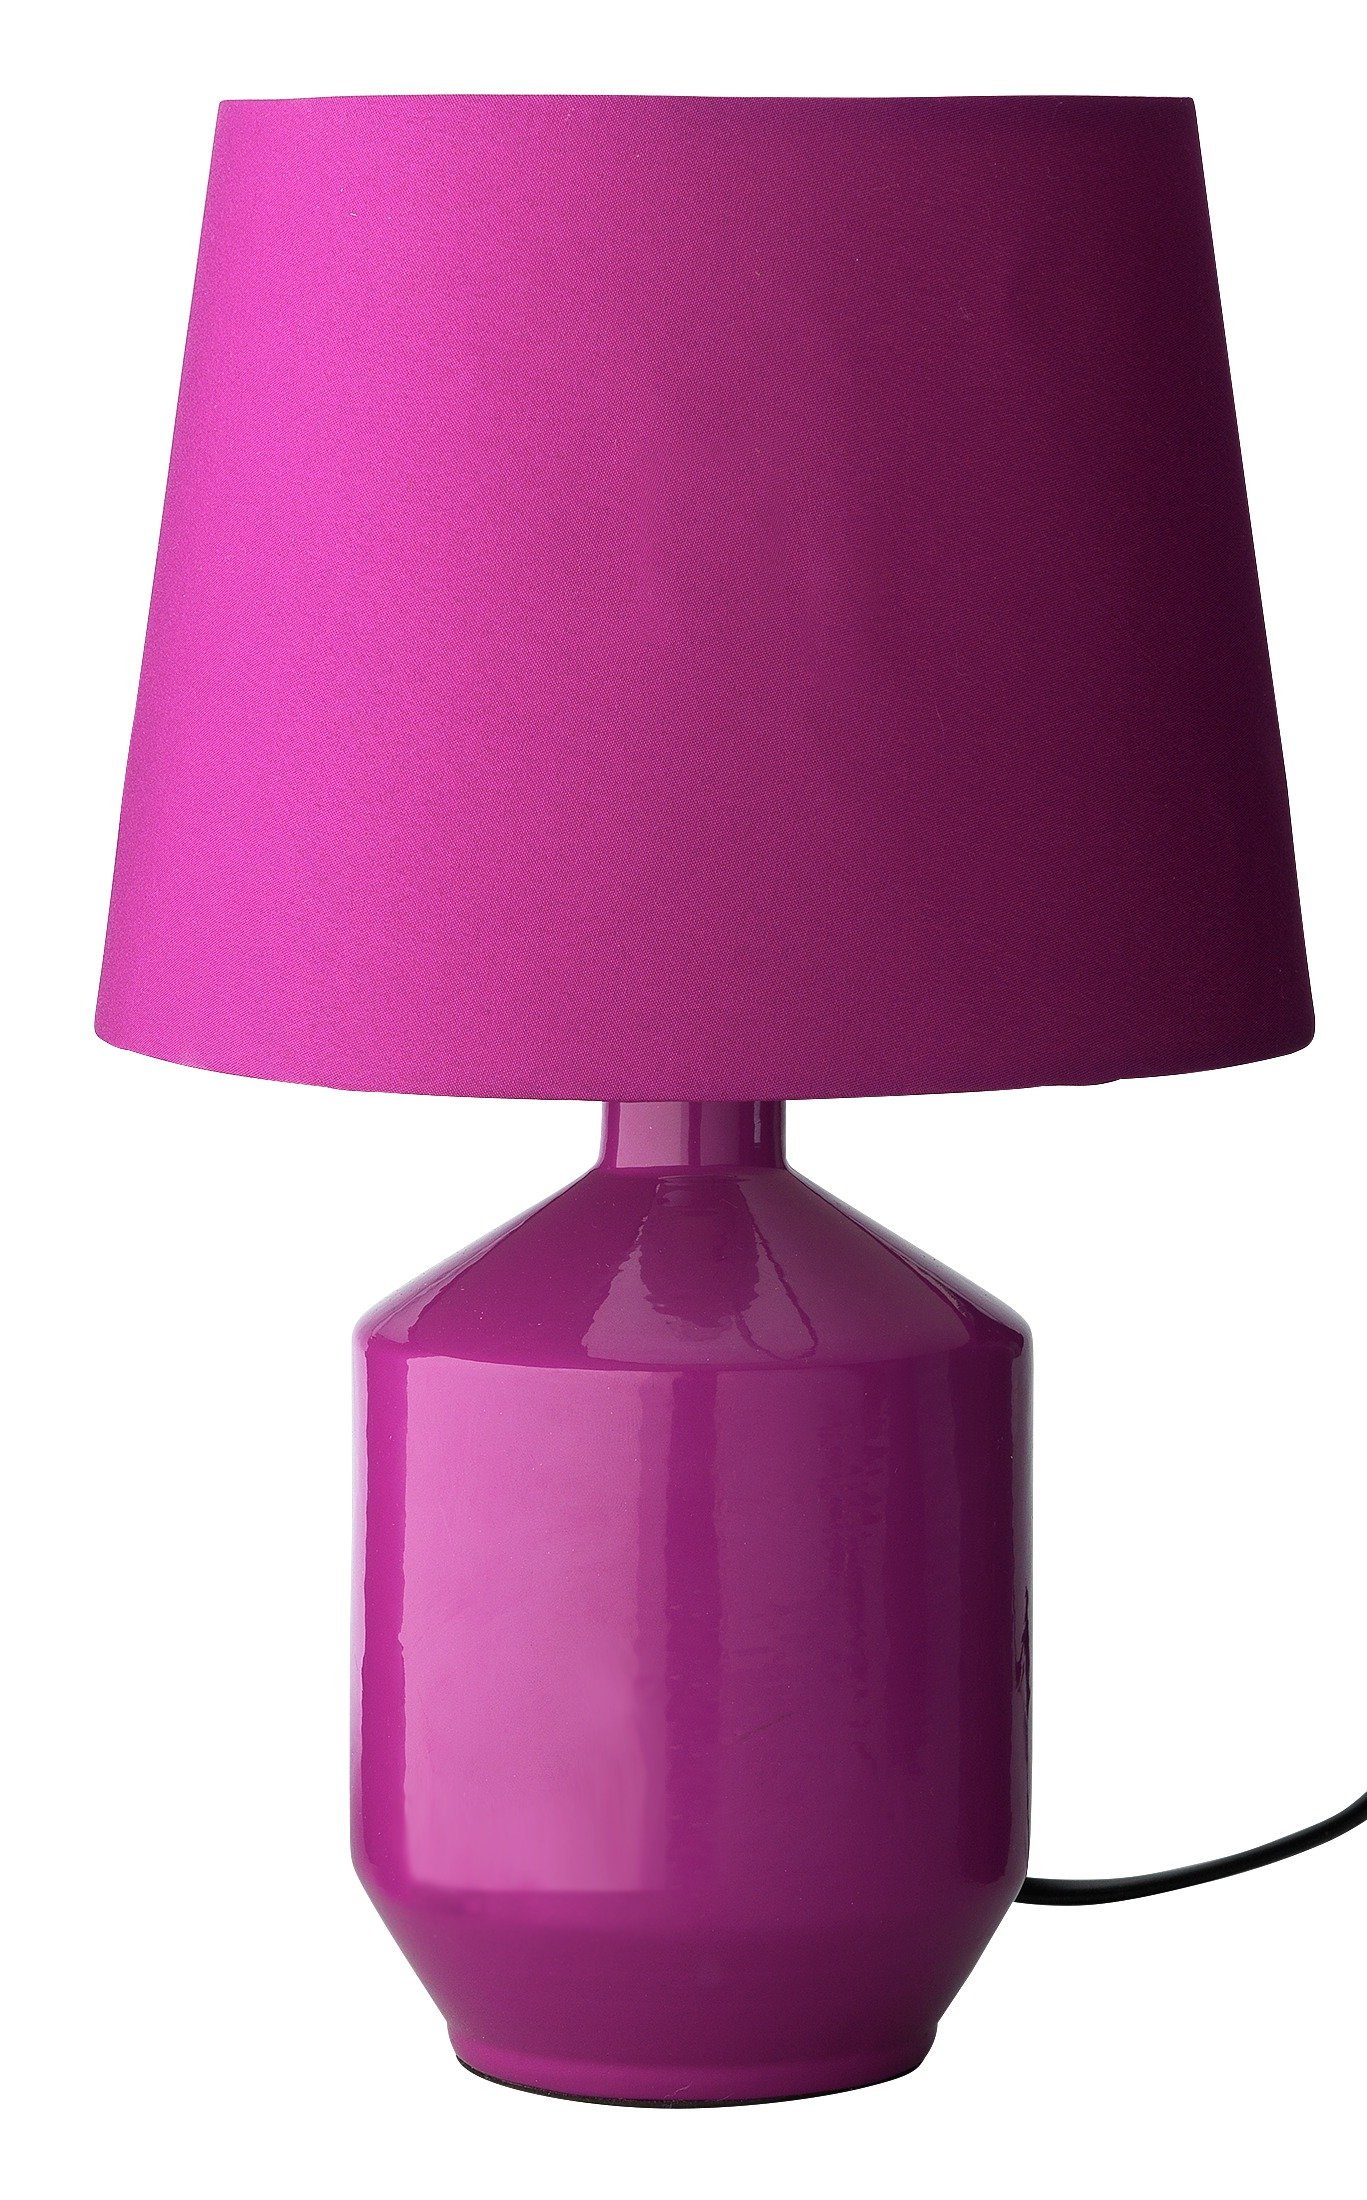 Image of ColourMatch Ceramic Table Lamp - Grape